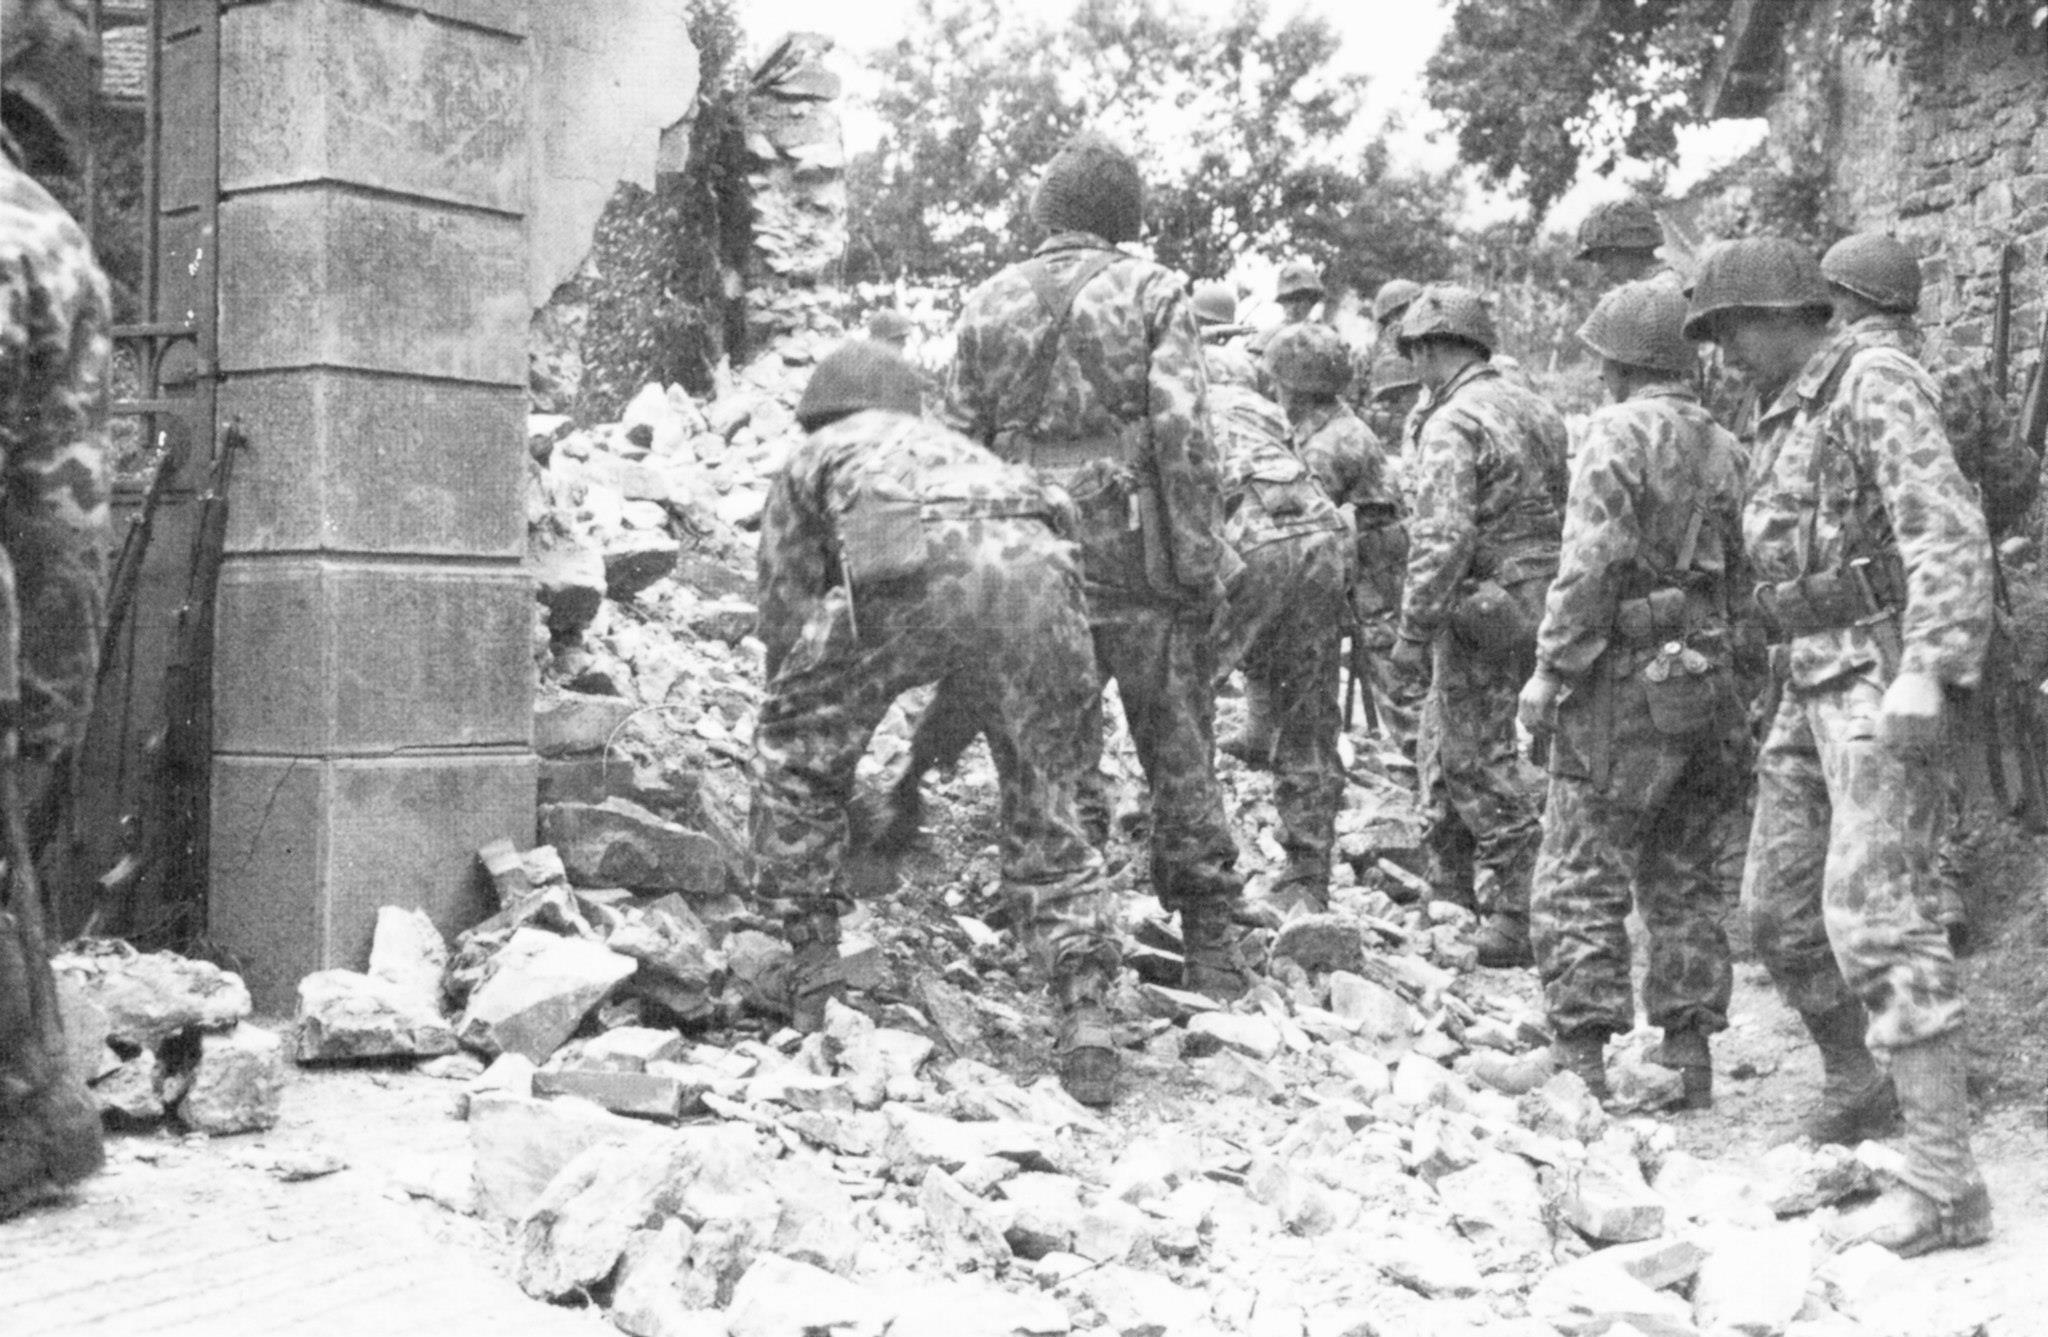 17th AEB aan het werk in Canisy, Frankrijk 27 july, 1944. group of camouflaged engineers Canisy, France bombed the night before